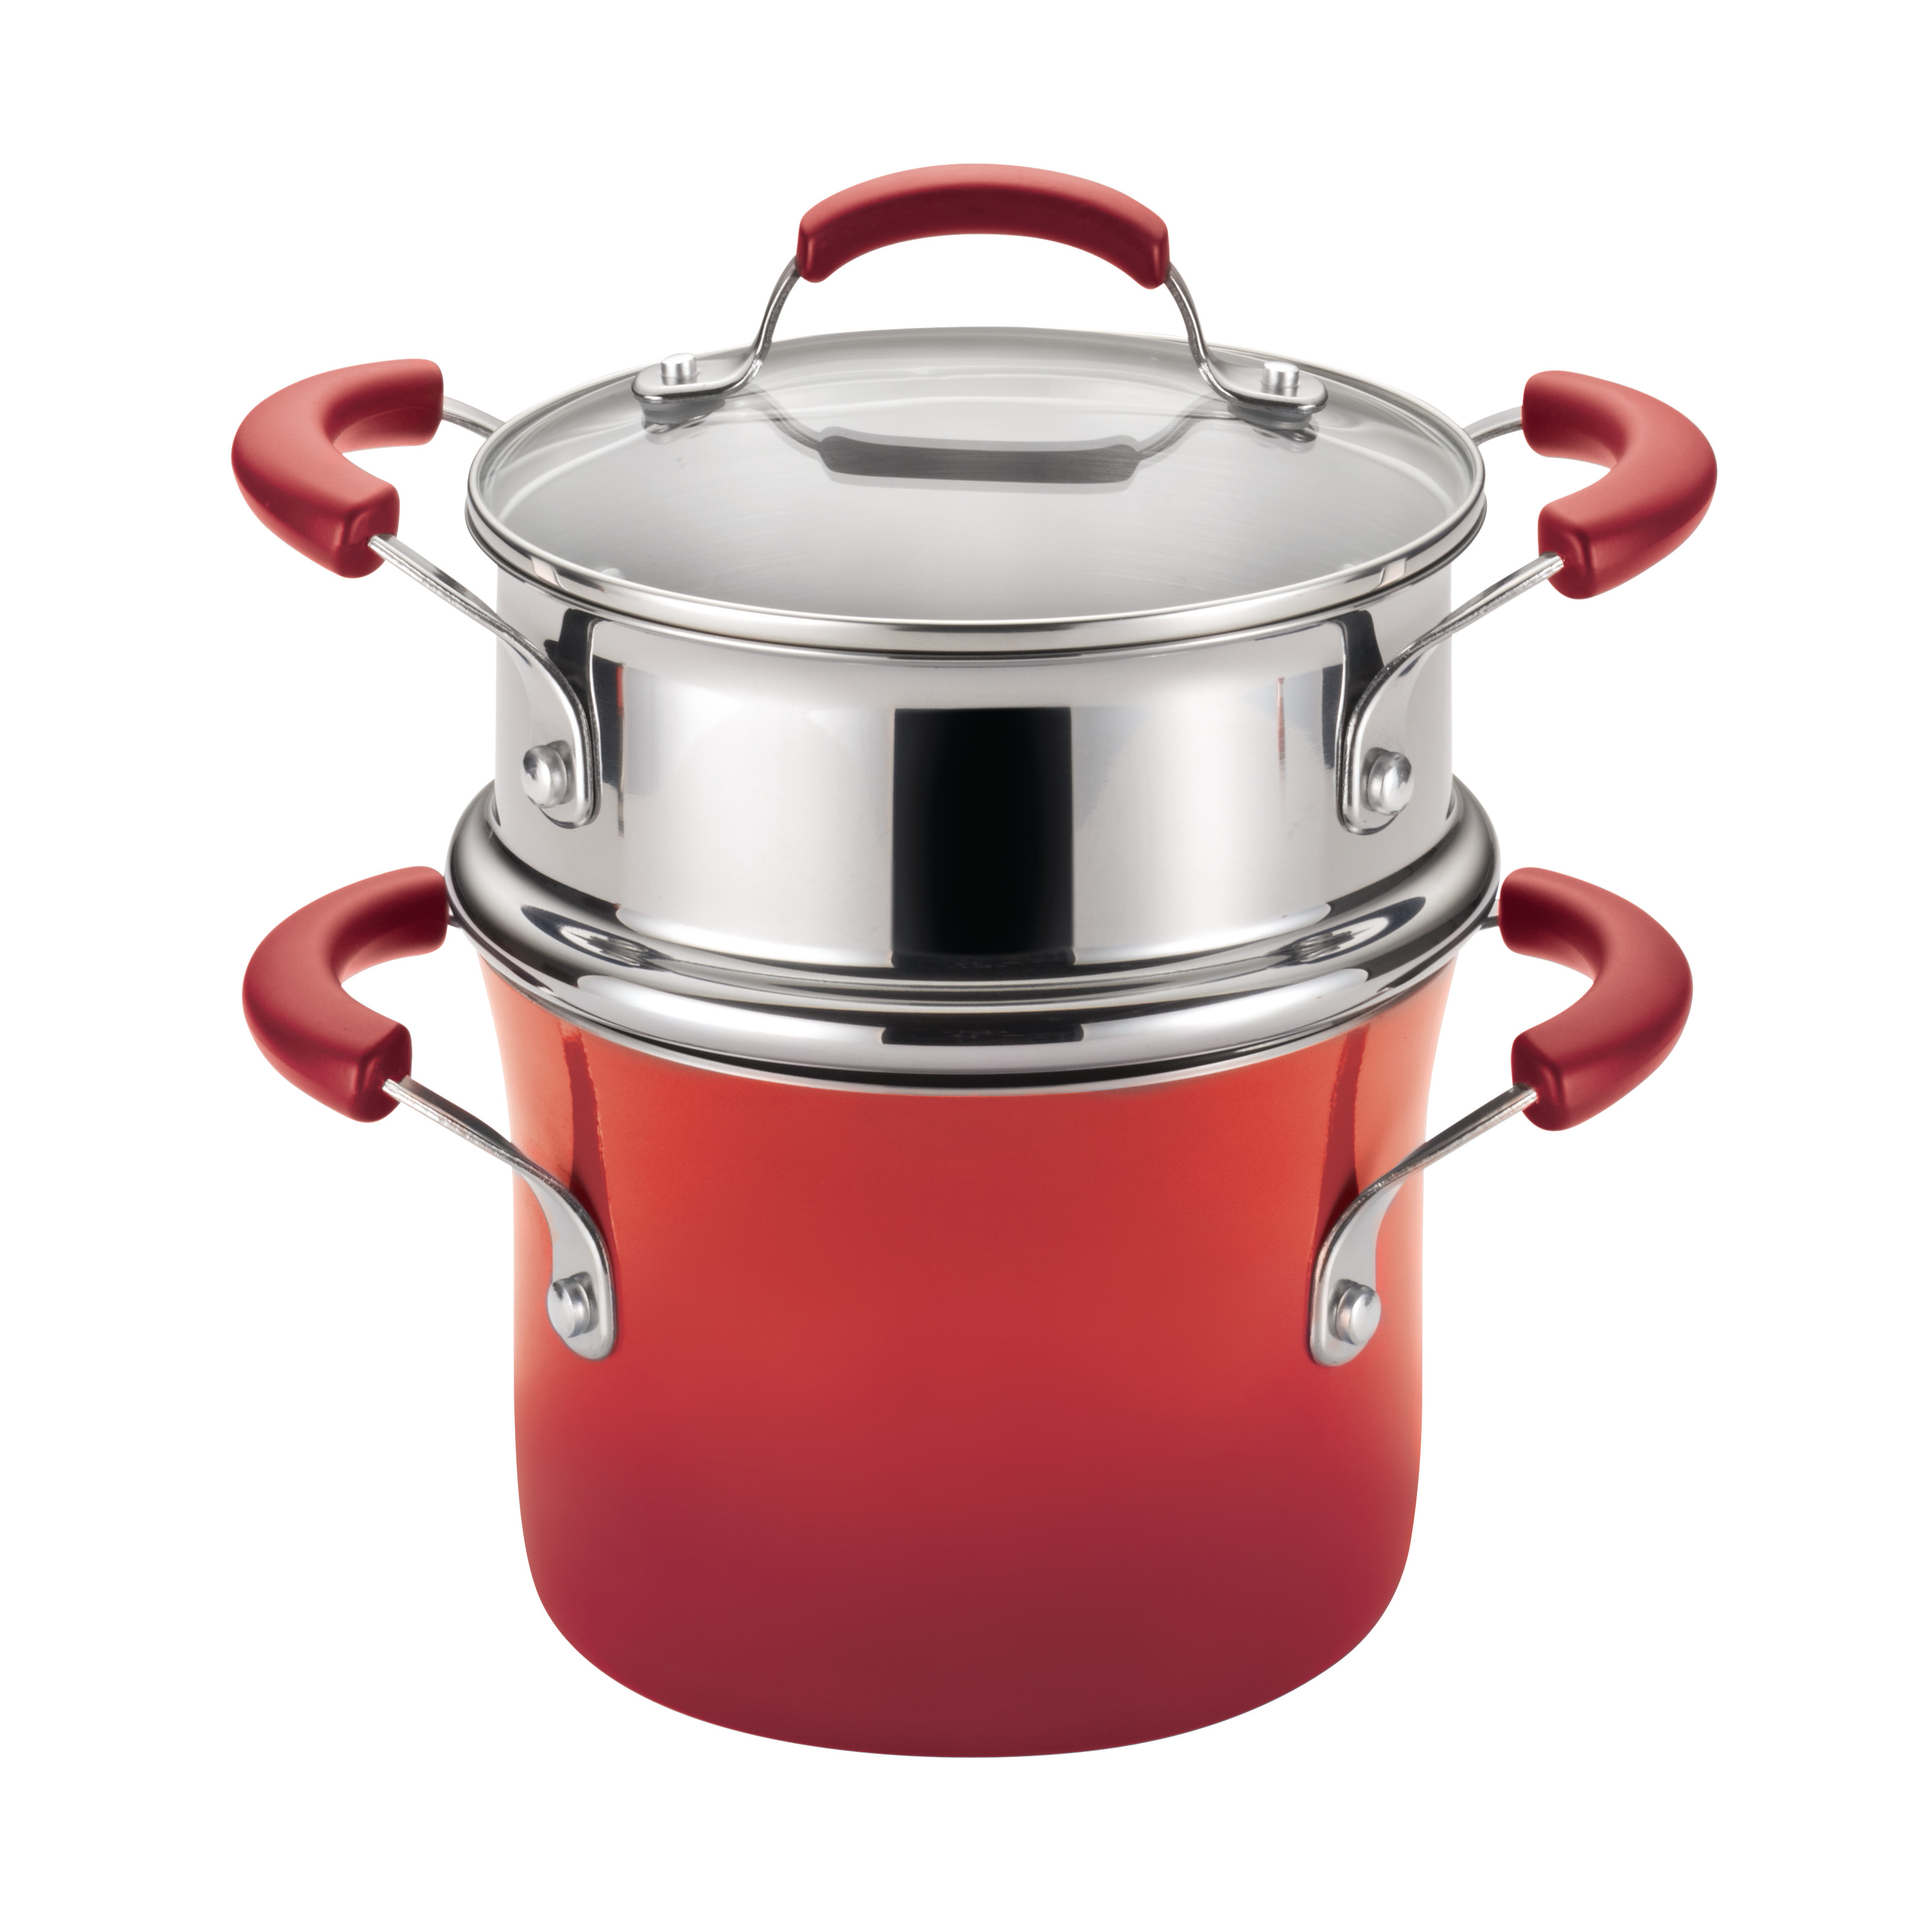 Rachael Ray Hard Enamel Nonstick 3-Quart Covered Steamer Set, Red Gradient